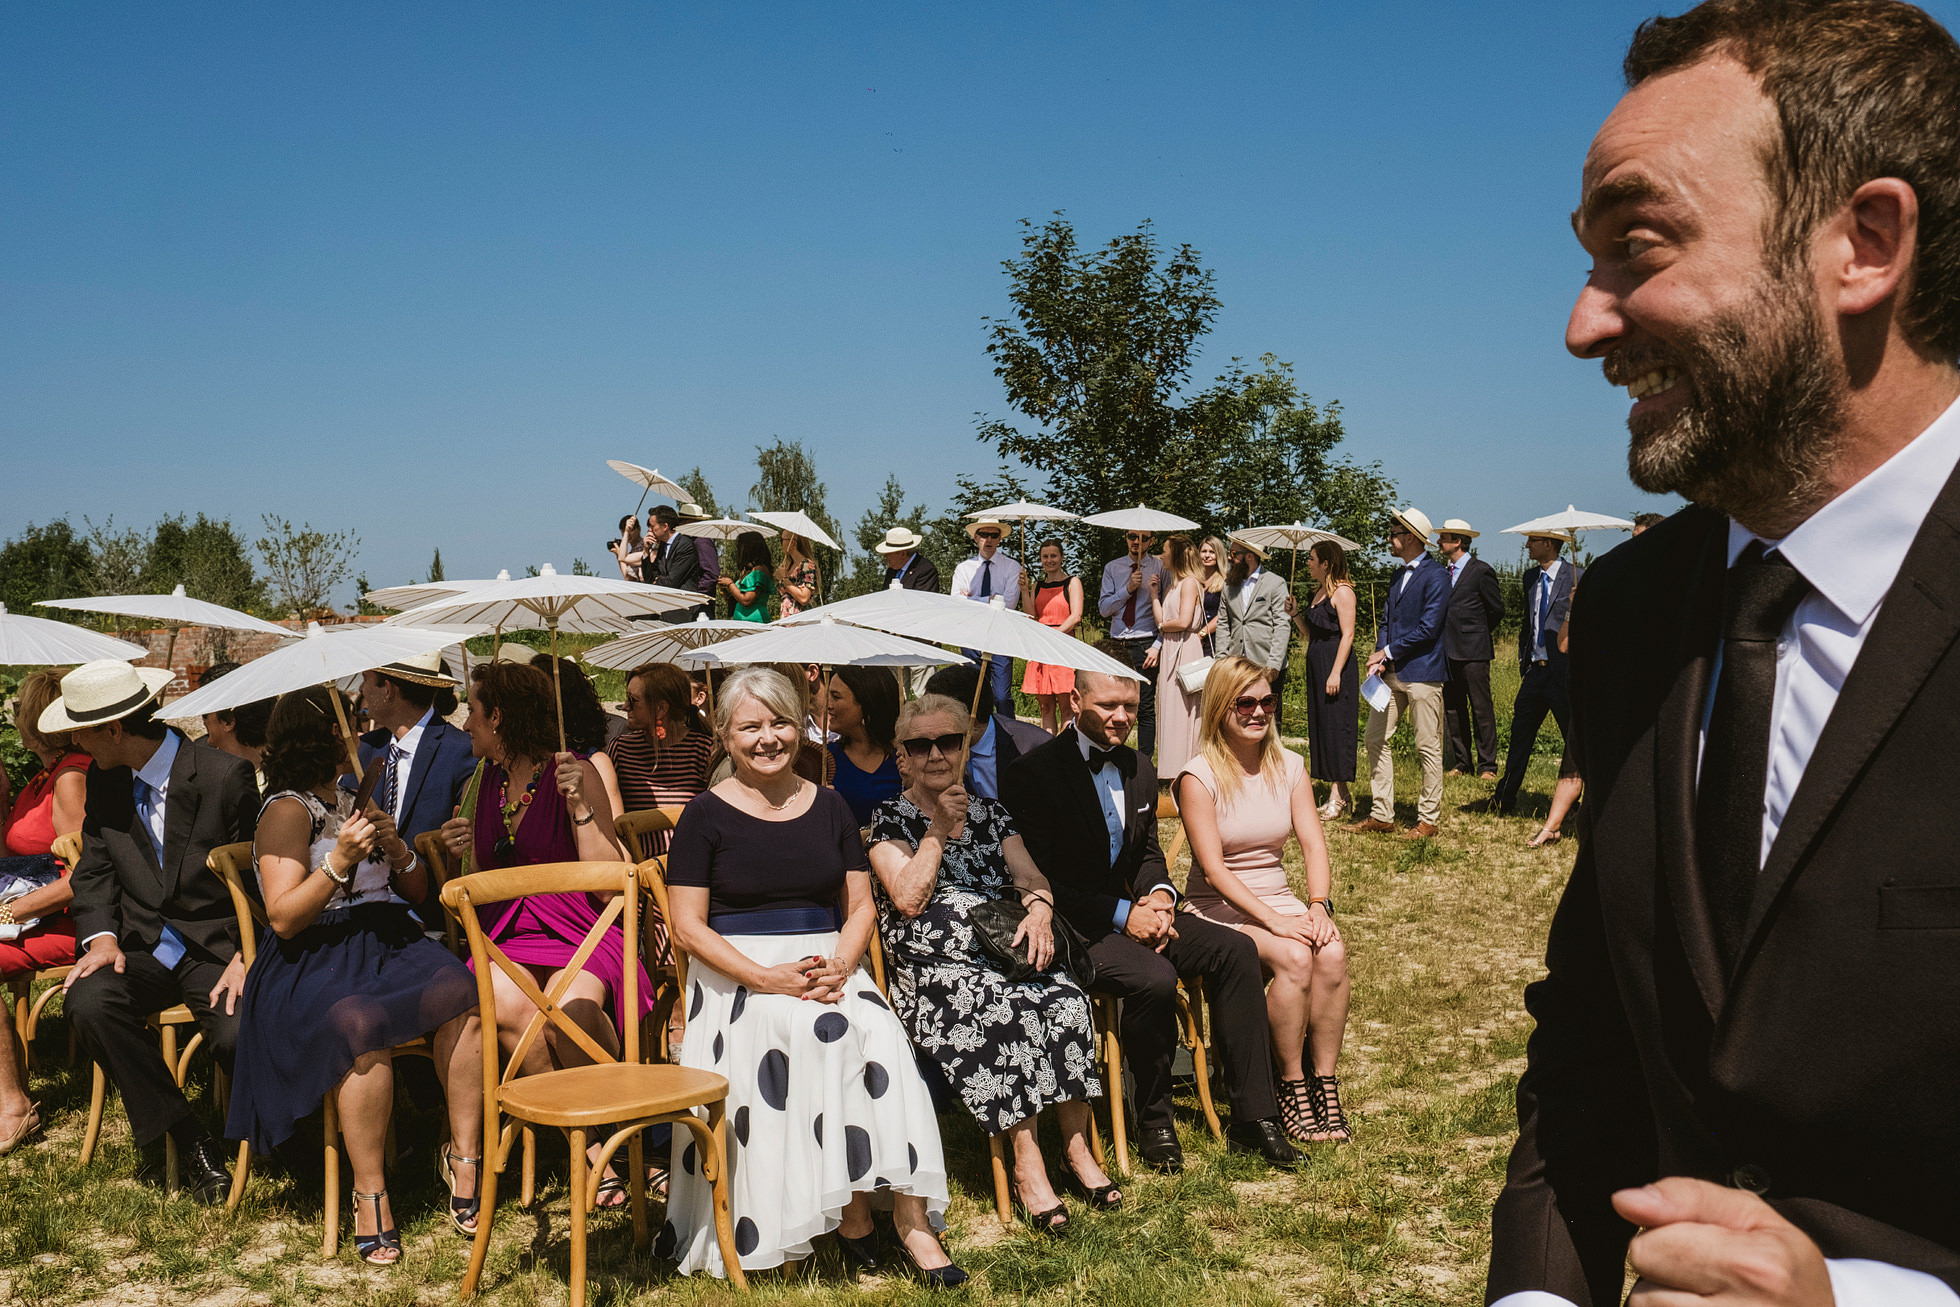 Excited groom at outdoor wedding ceremony in Krakow